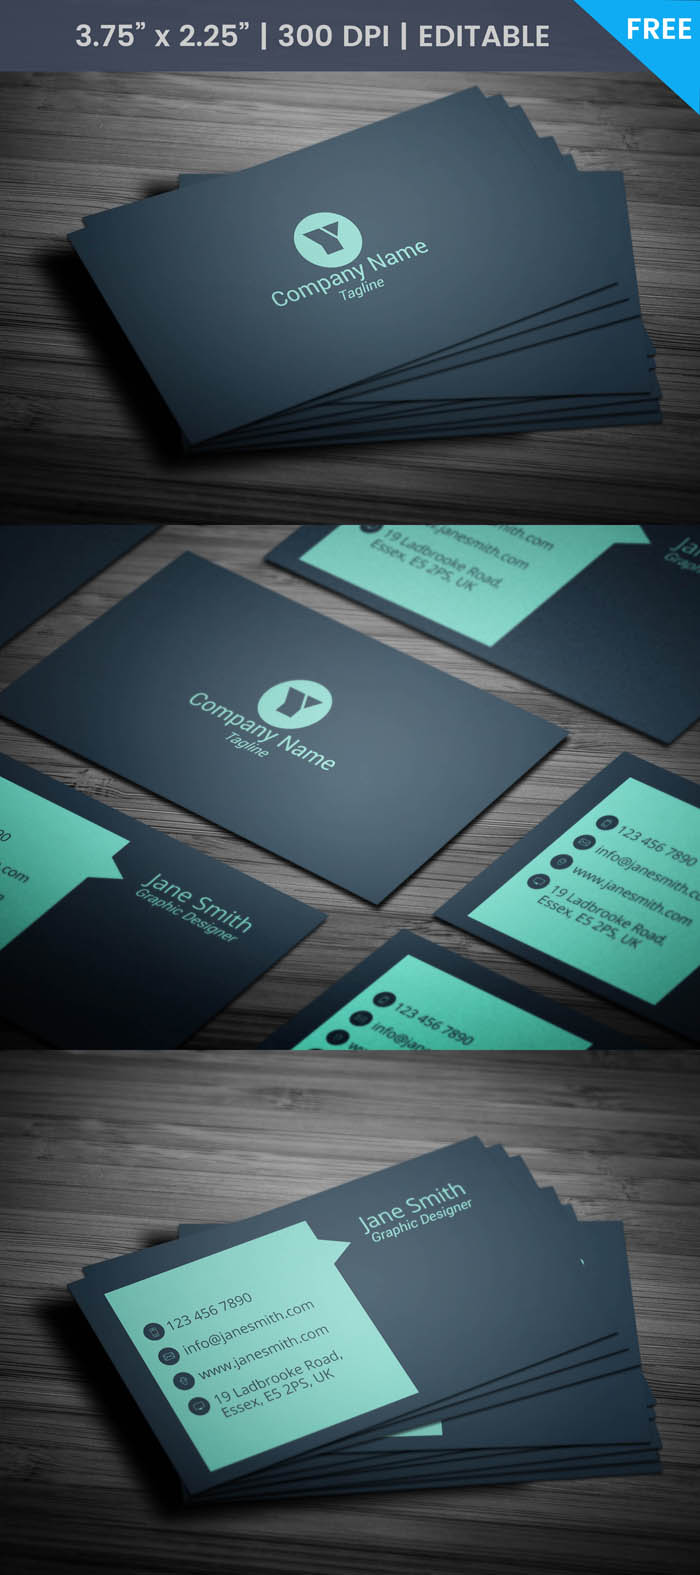 Sales Representative Business Card - Full Preview